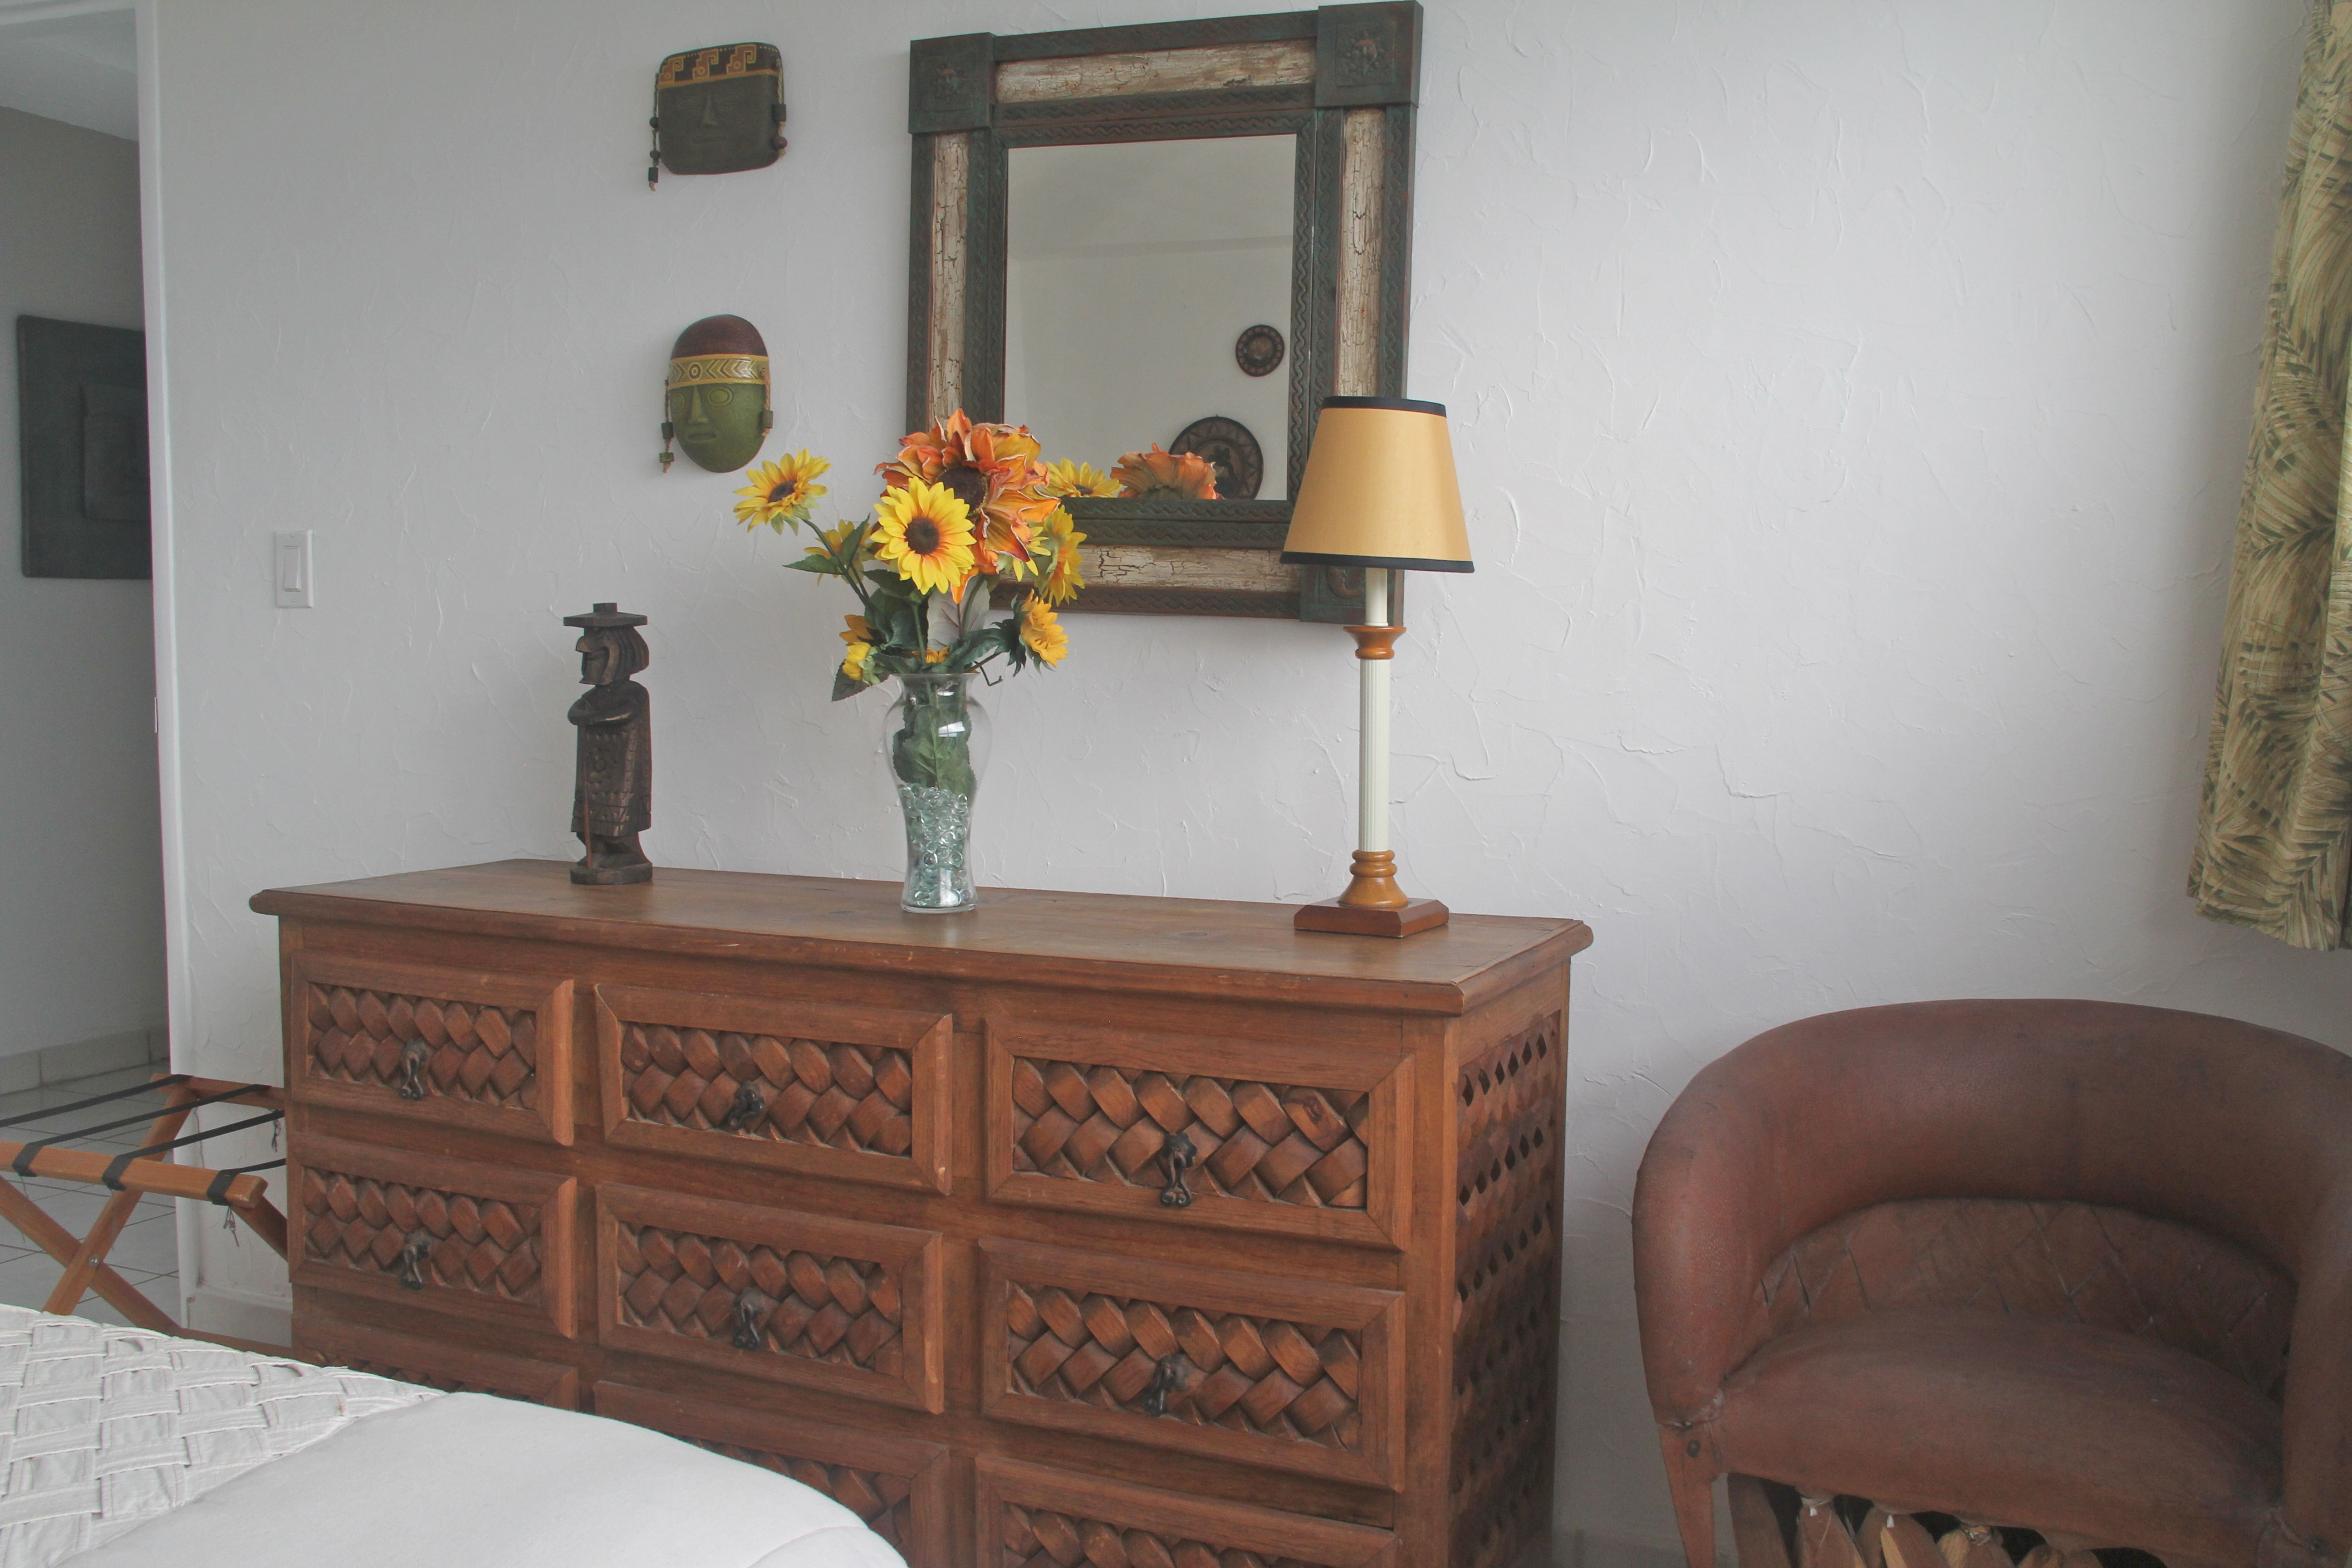 Locally made chair & dresser